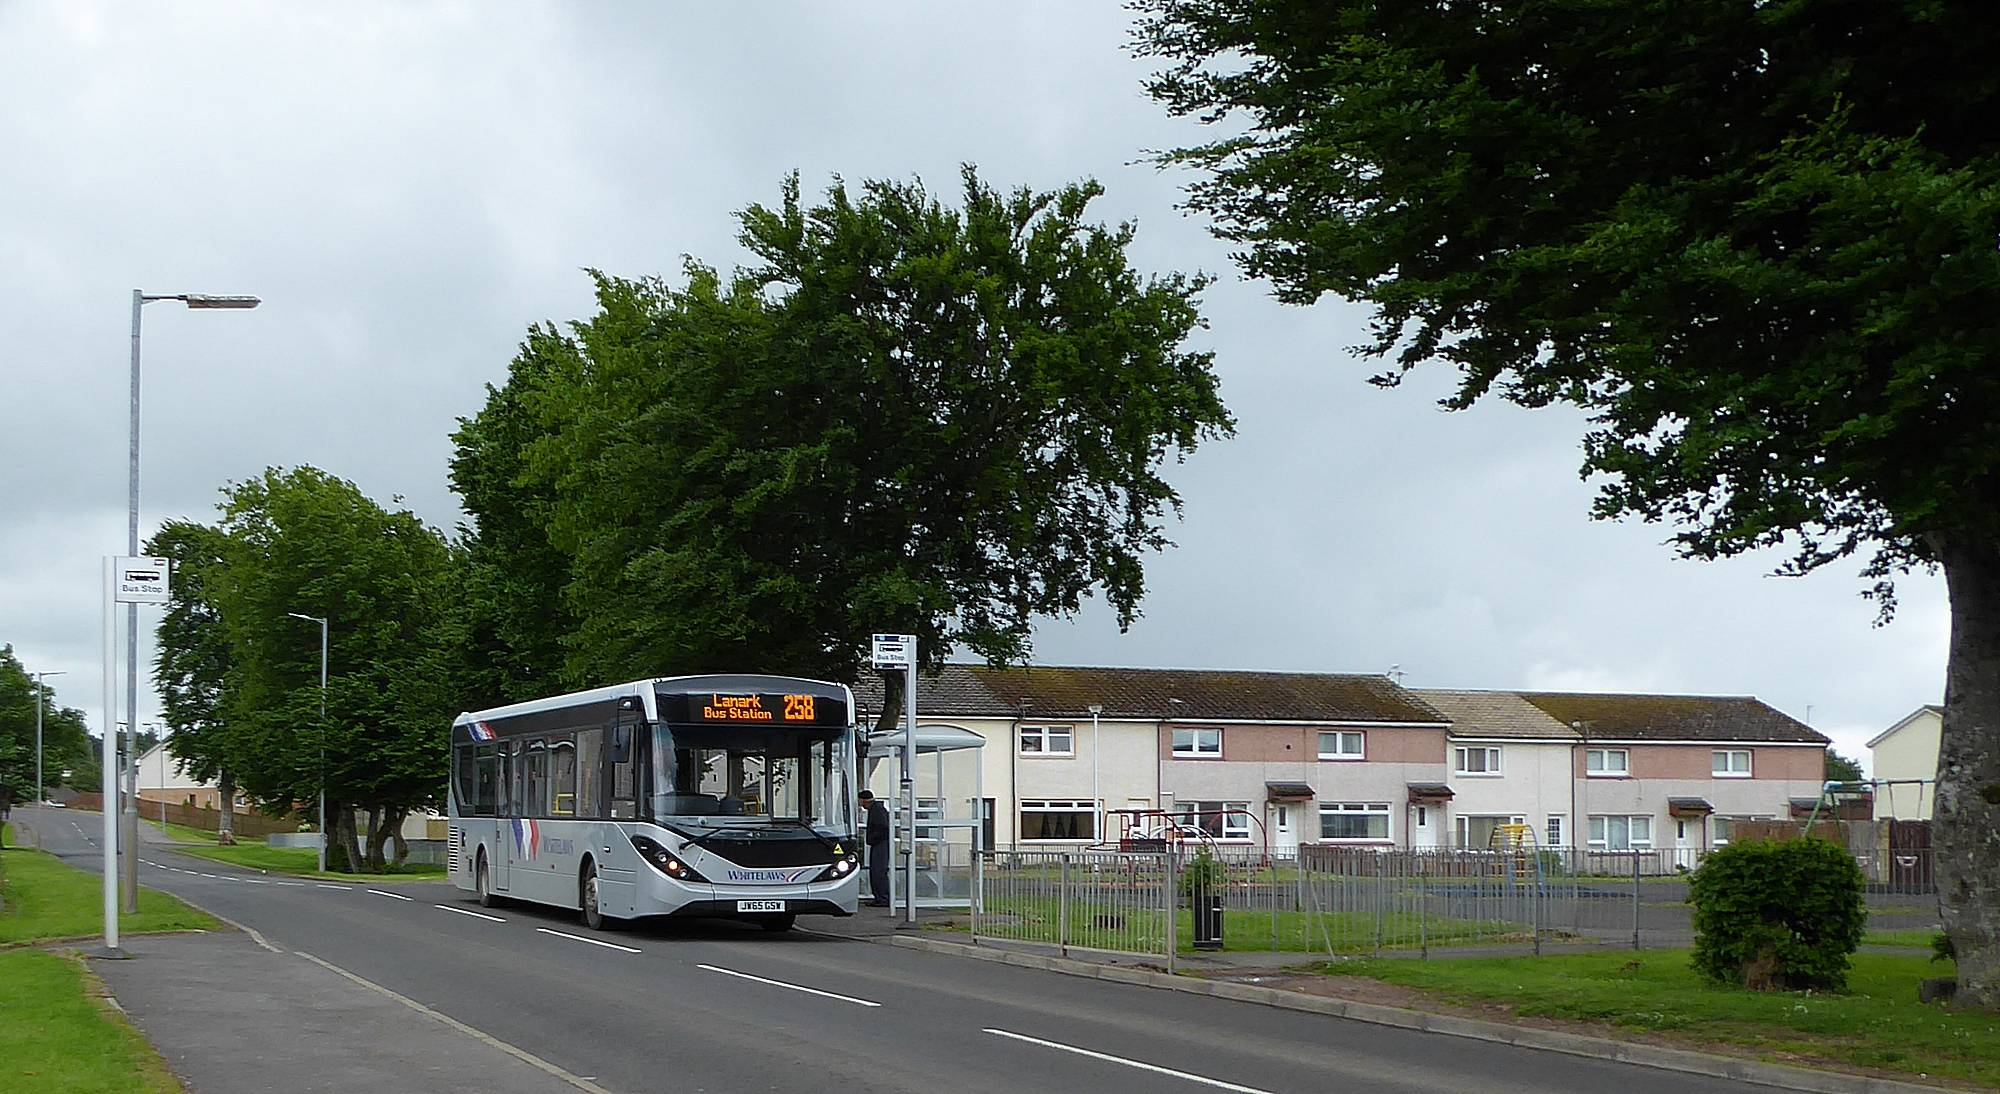 258 Lanark bus in Balgray Road, Lesmahagow